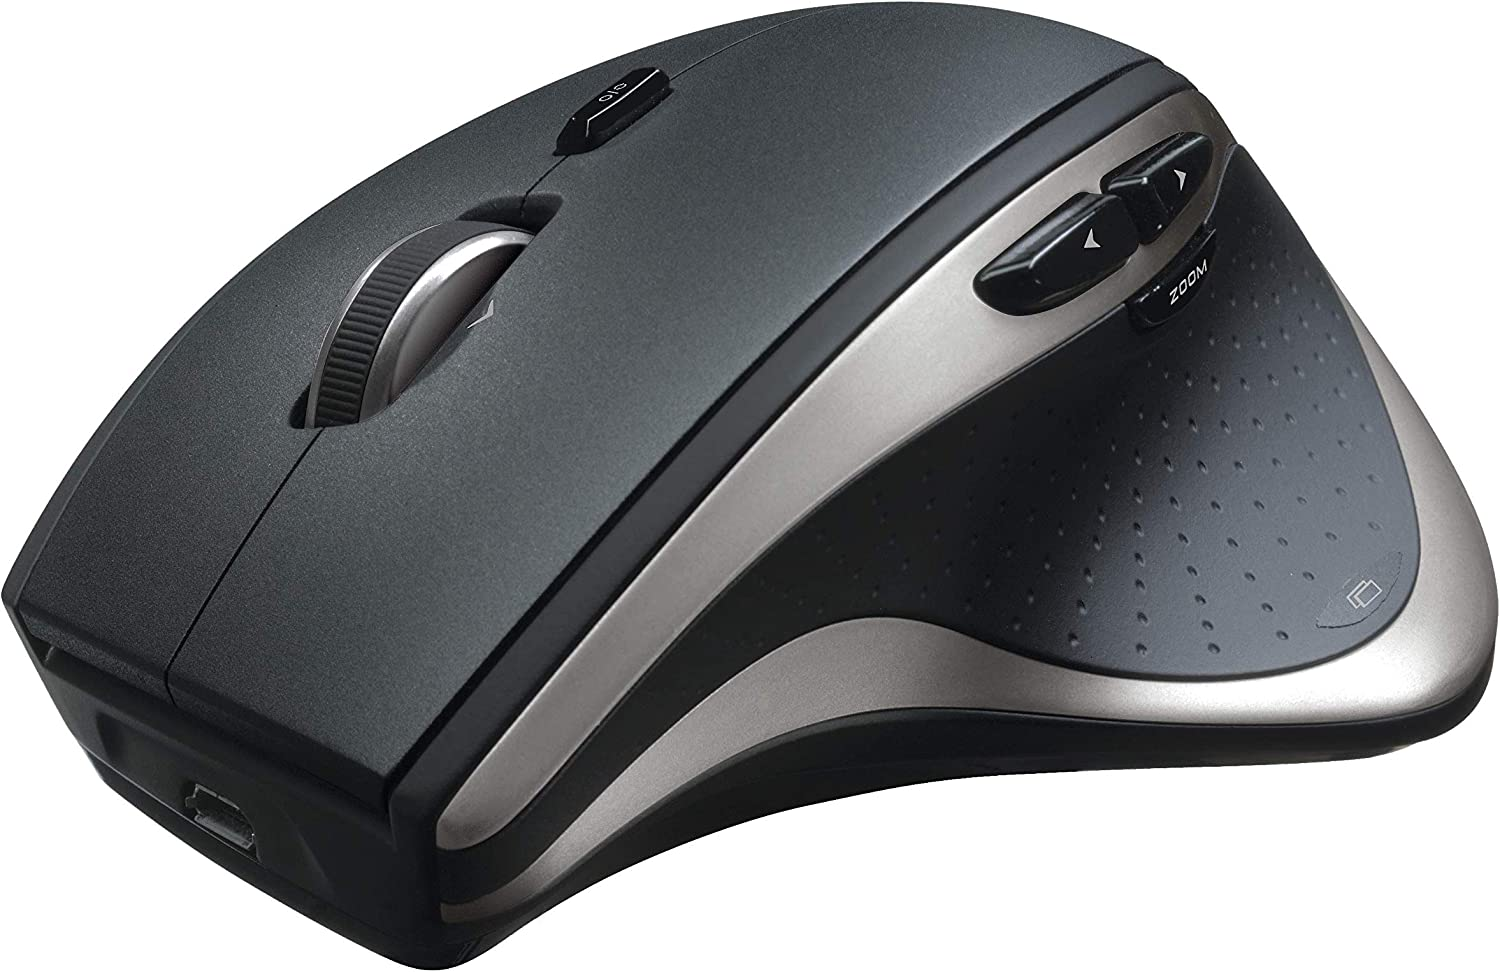 DISCONTINUED and Replaced by MX Master 2S Logitech Performance MX Wireless Mouse